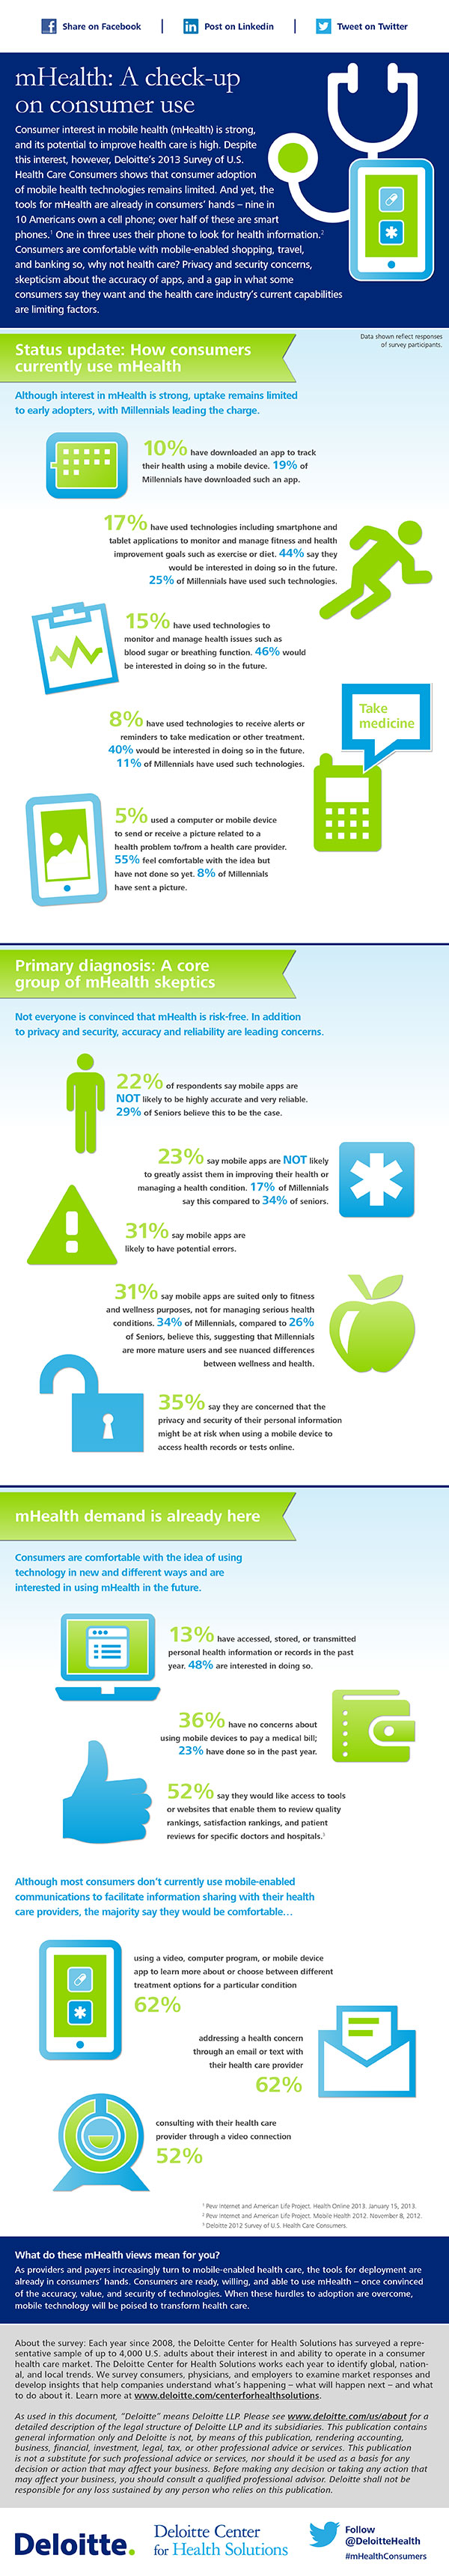 Infographic mHealth A CheckUp On Consumer Use